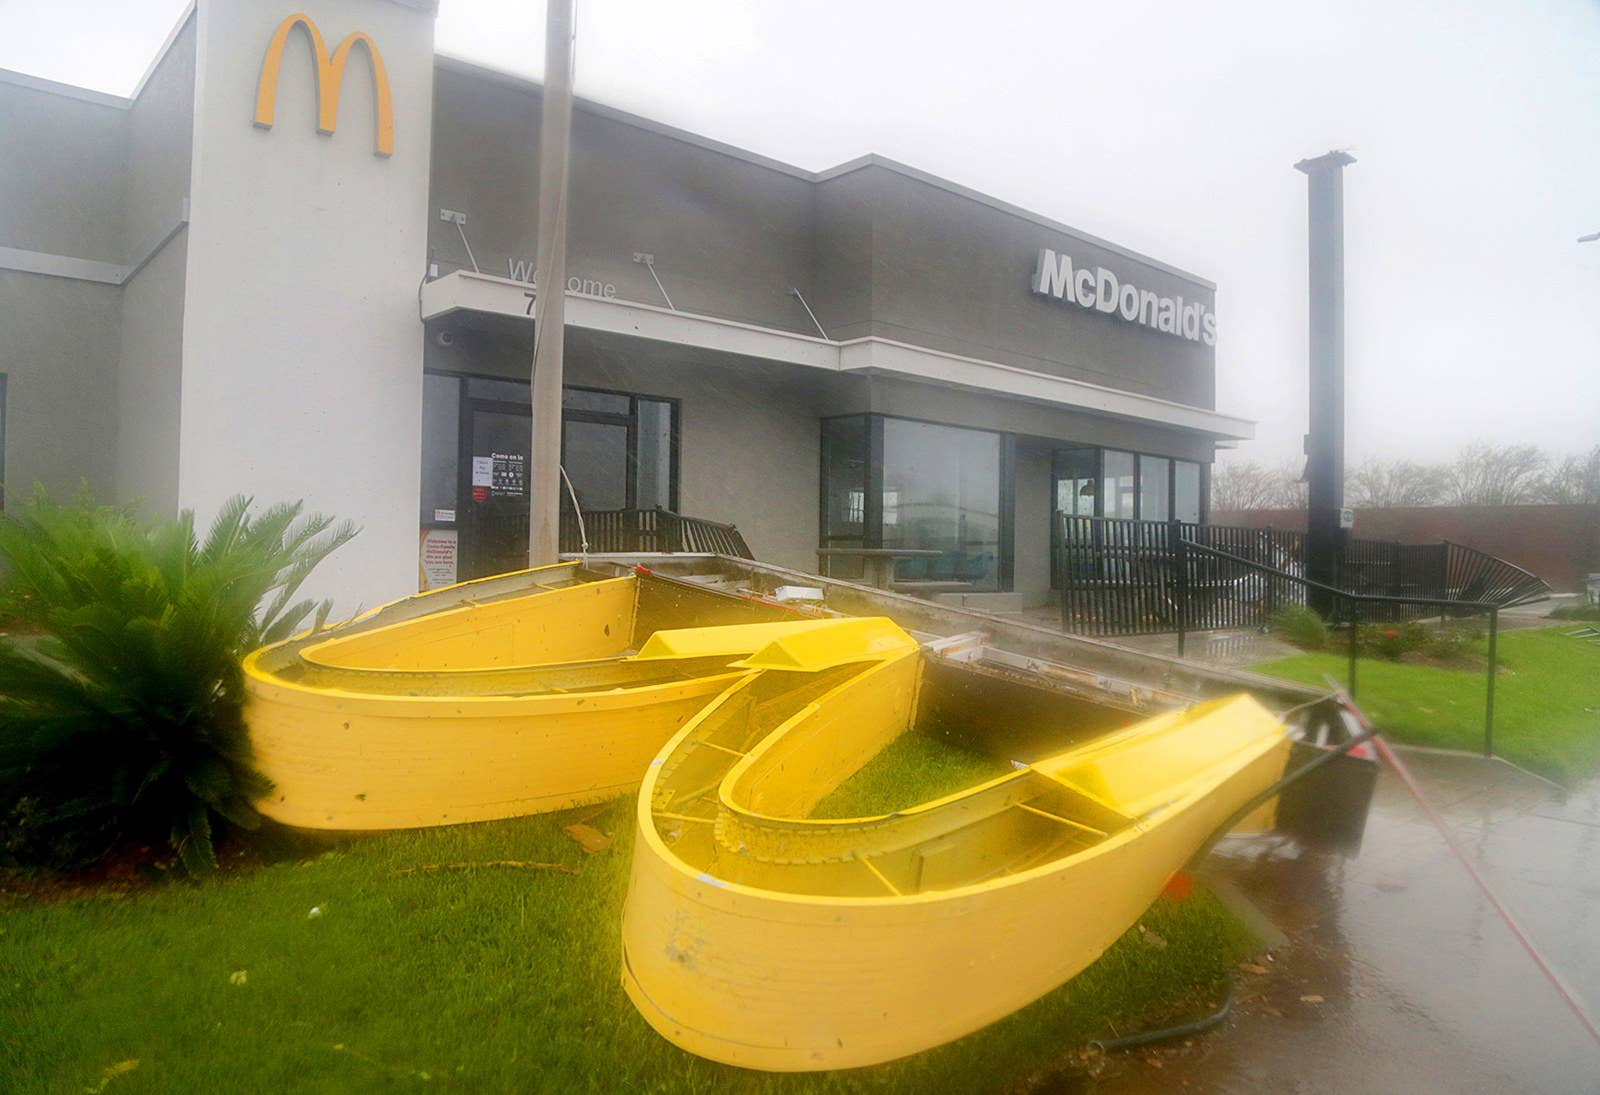 A McDonald's sign is toppled in Panama City, Florida.